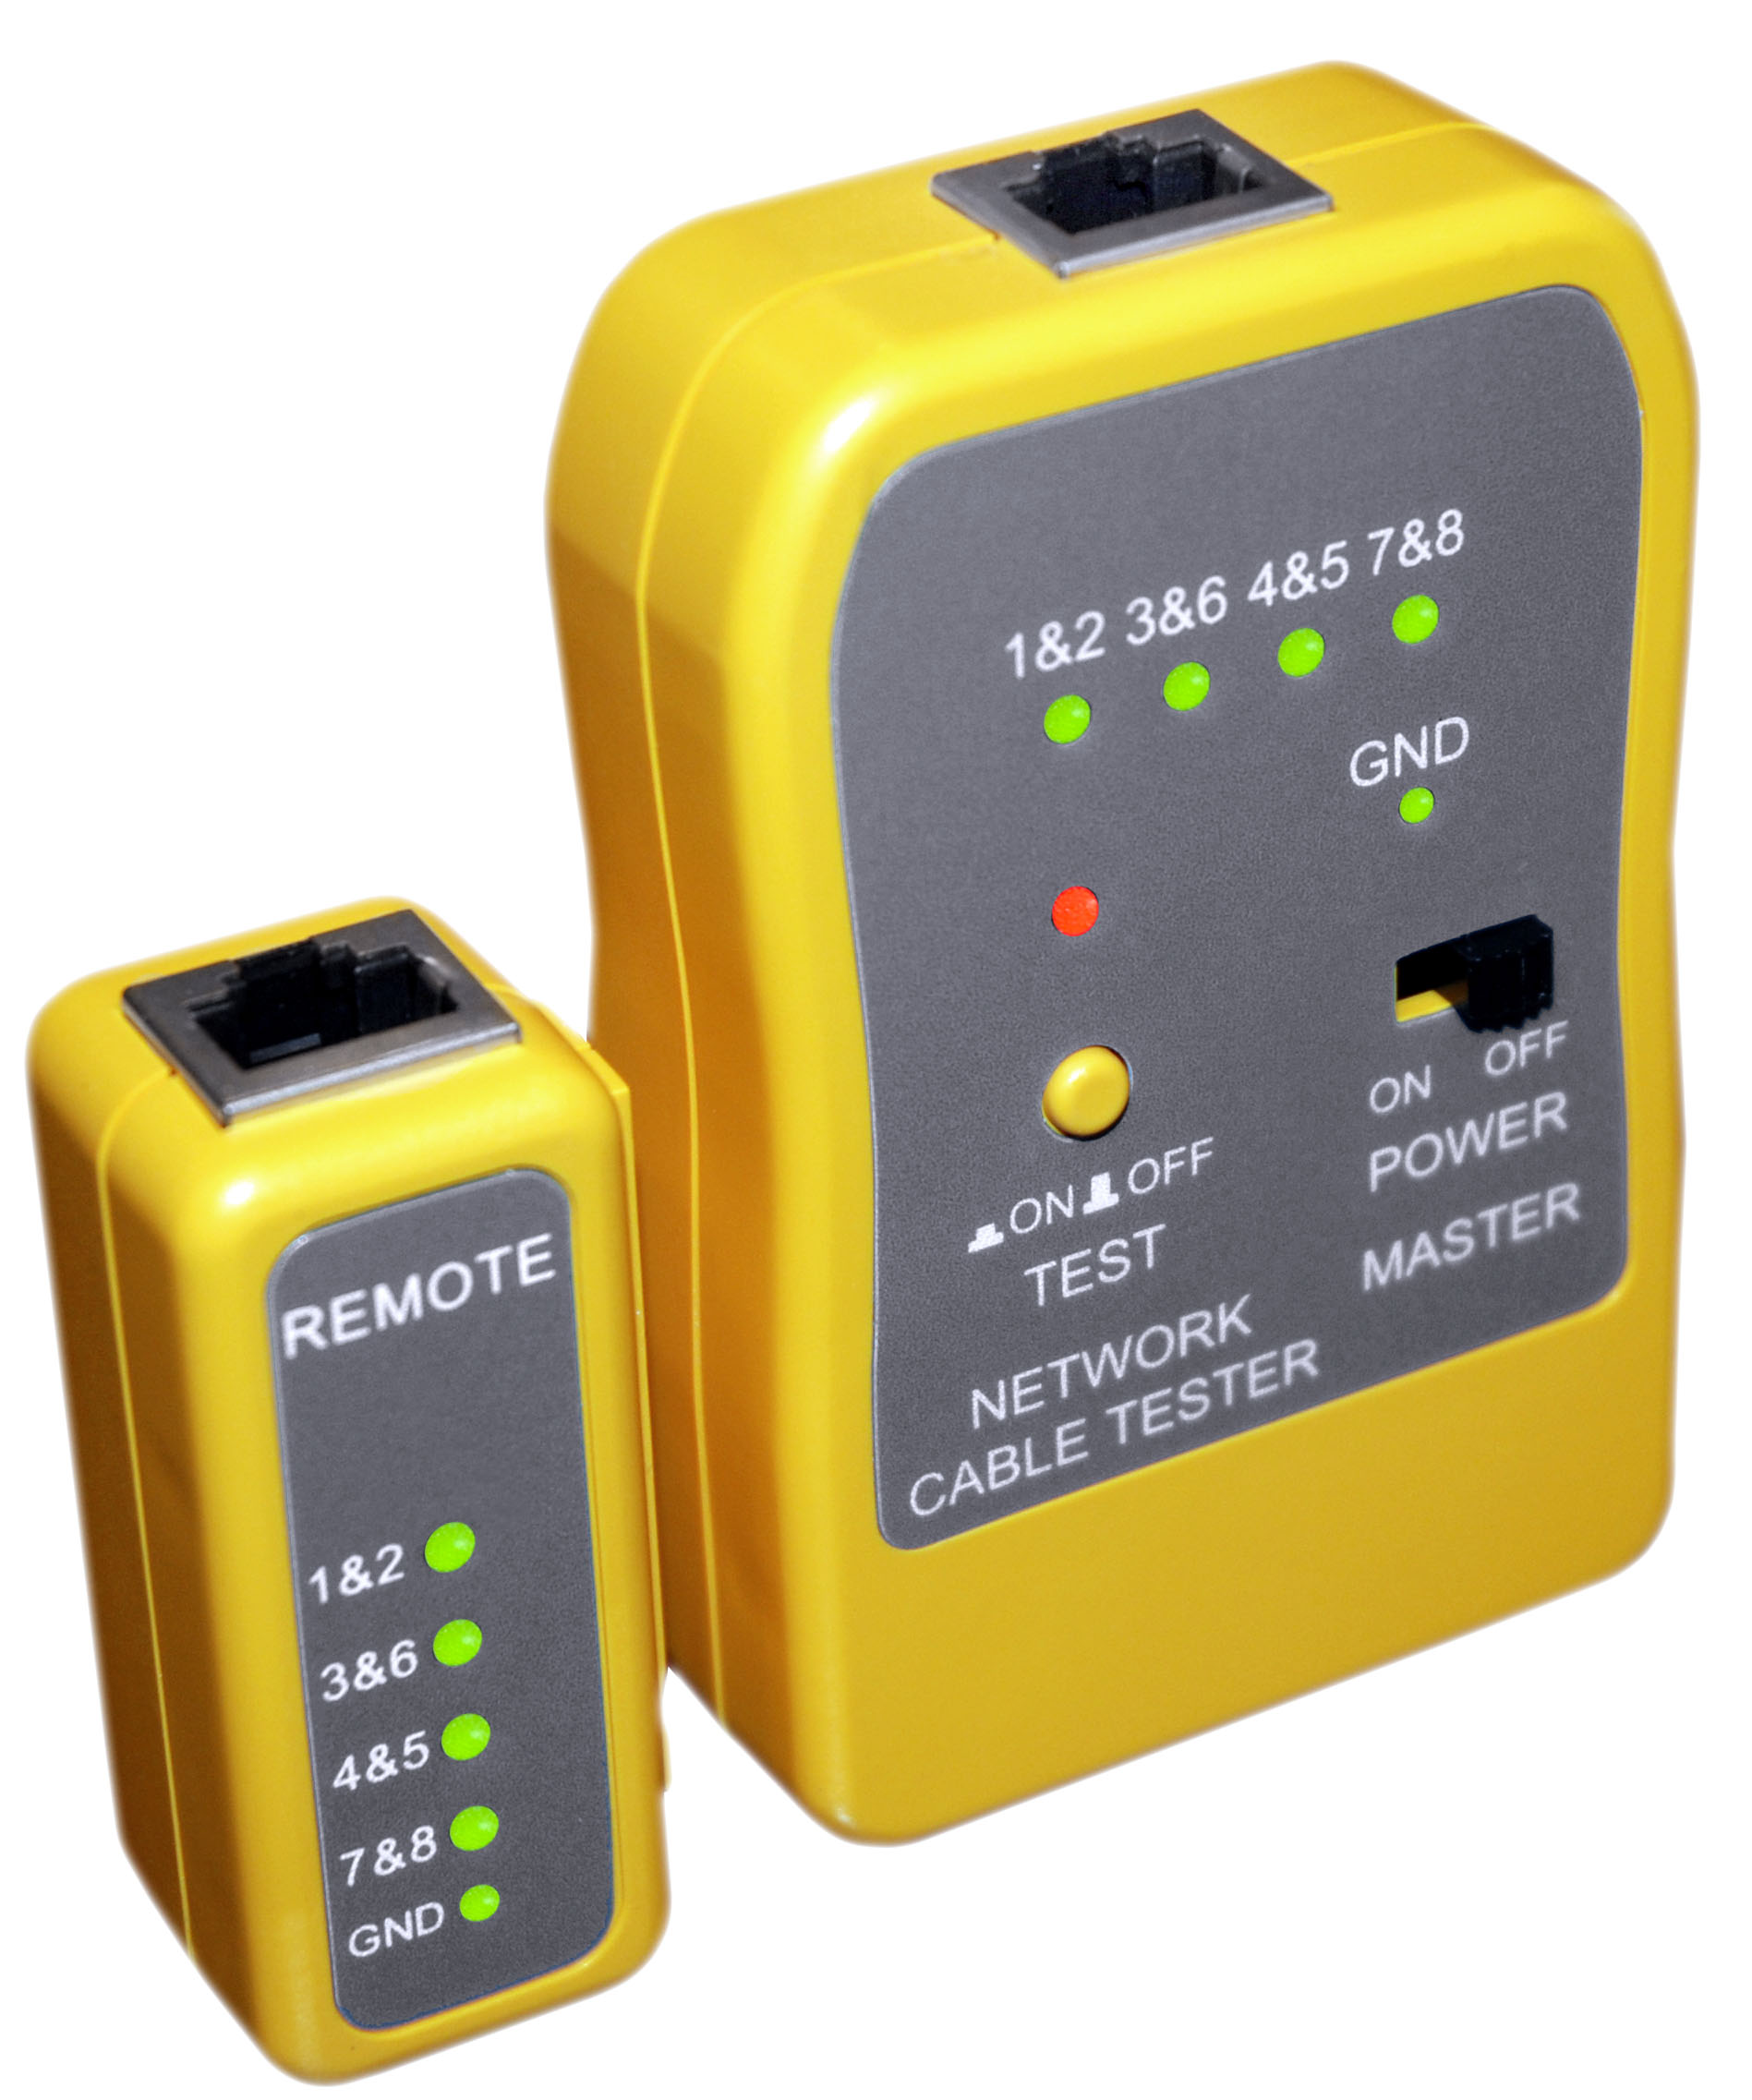 Quicktrex Lanpro Series Network Administrator Ii Kit Lan Tester Lantest Pro Cable With 8 Remotes